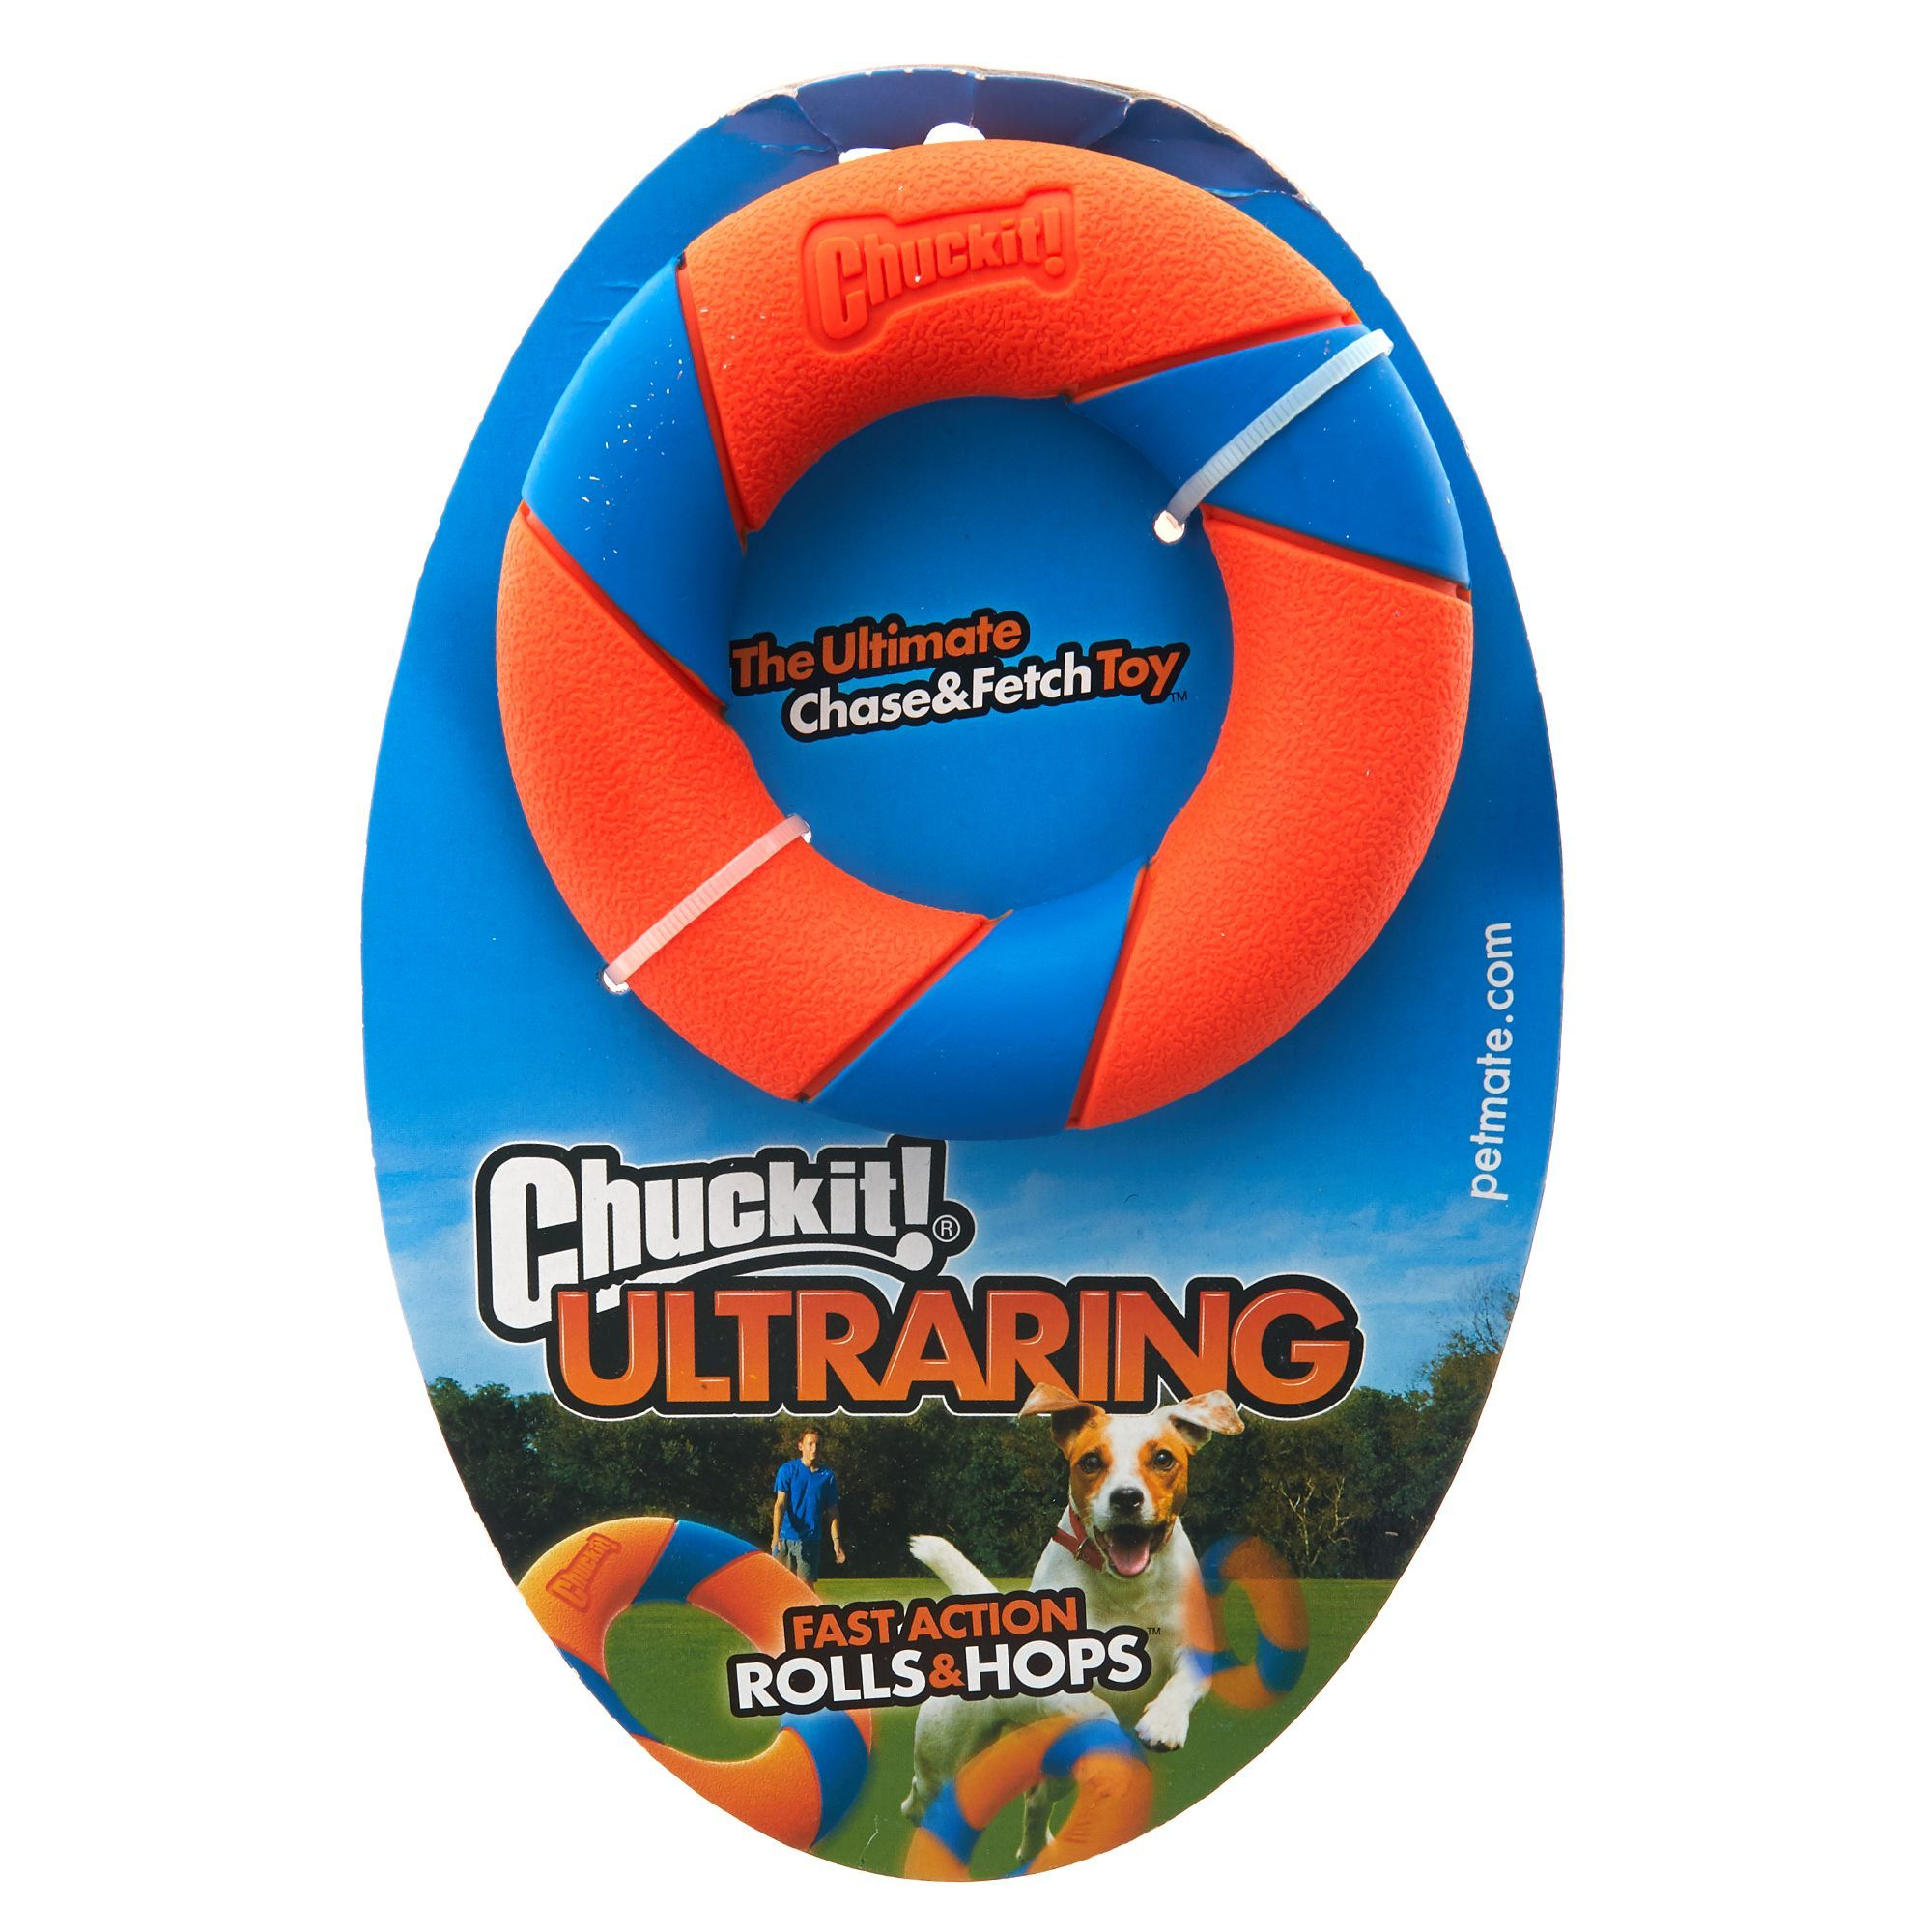 Chuckit Ultraring Dog Toy Products Dog Toys Toys Dogs